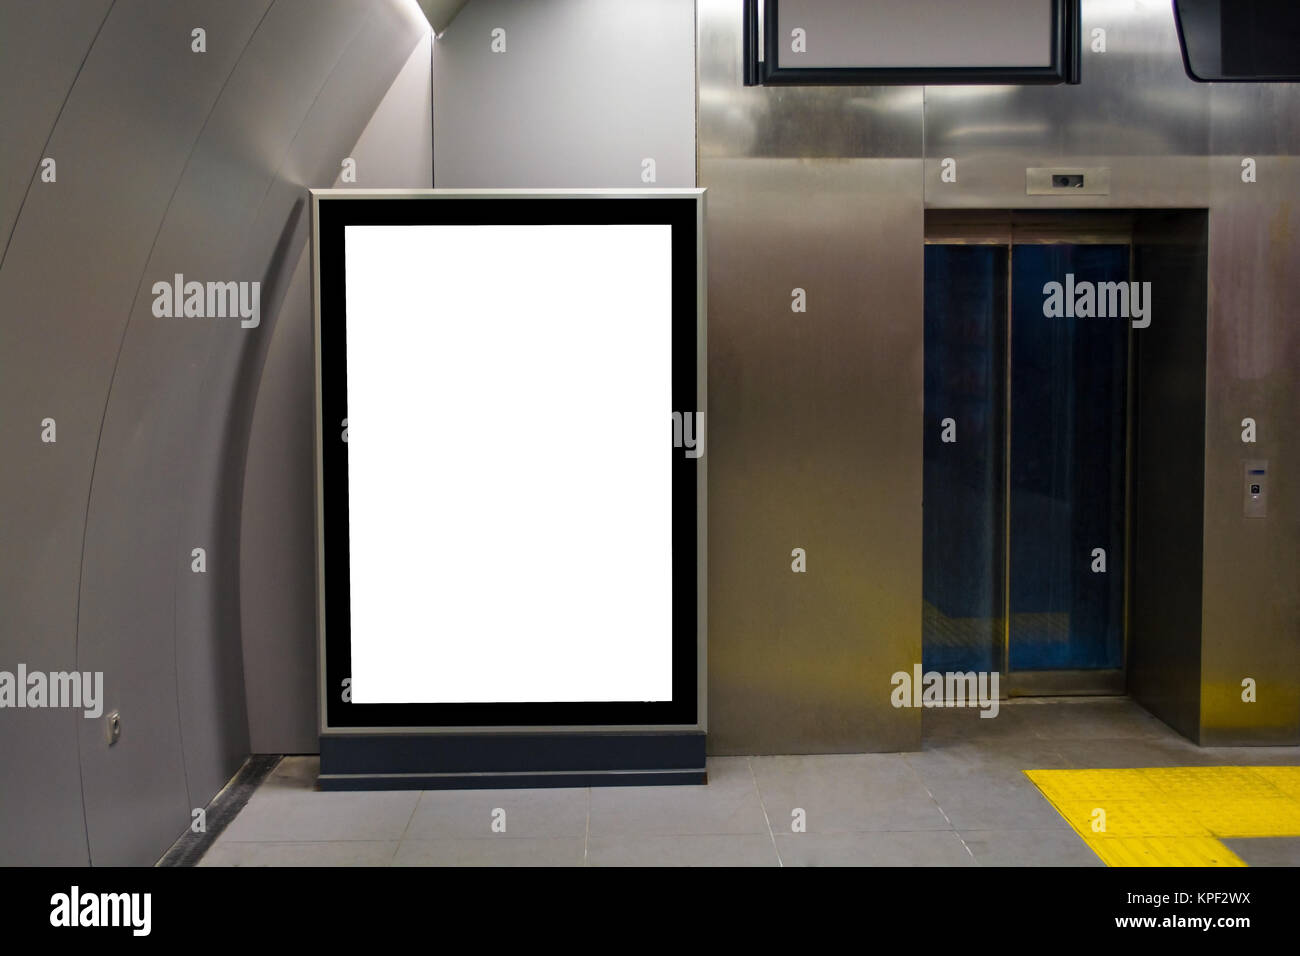 blank vertical billboard or poster in the elevator hall - Stock Image